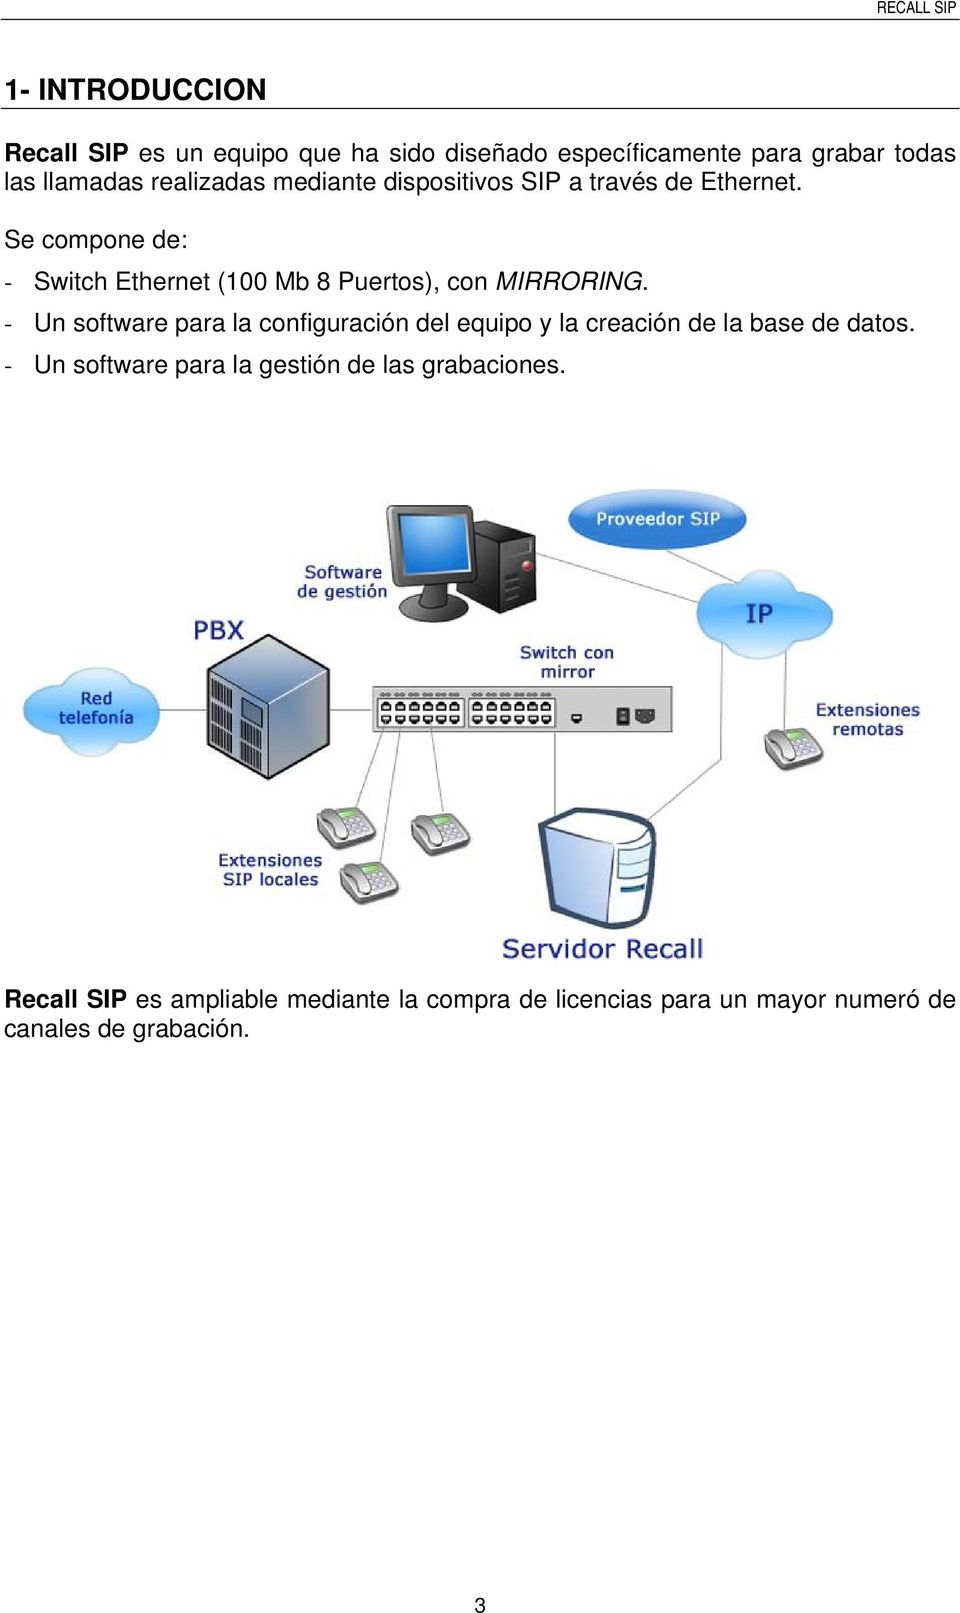 Se compone de: - Switch Ethernet (100 Mb 8 Puertos), con MIRRORING.